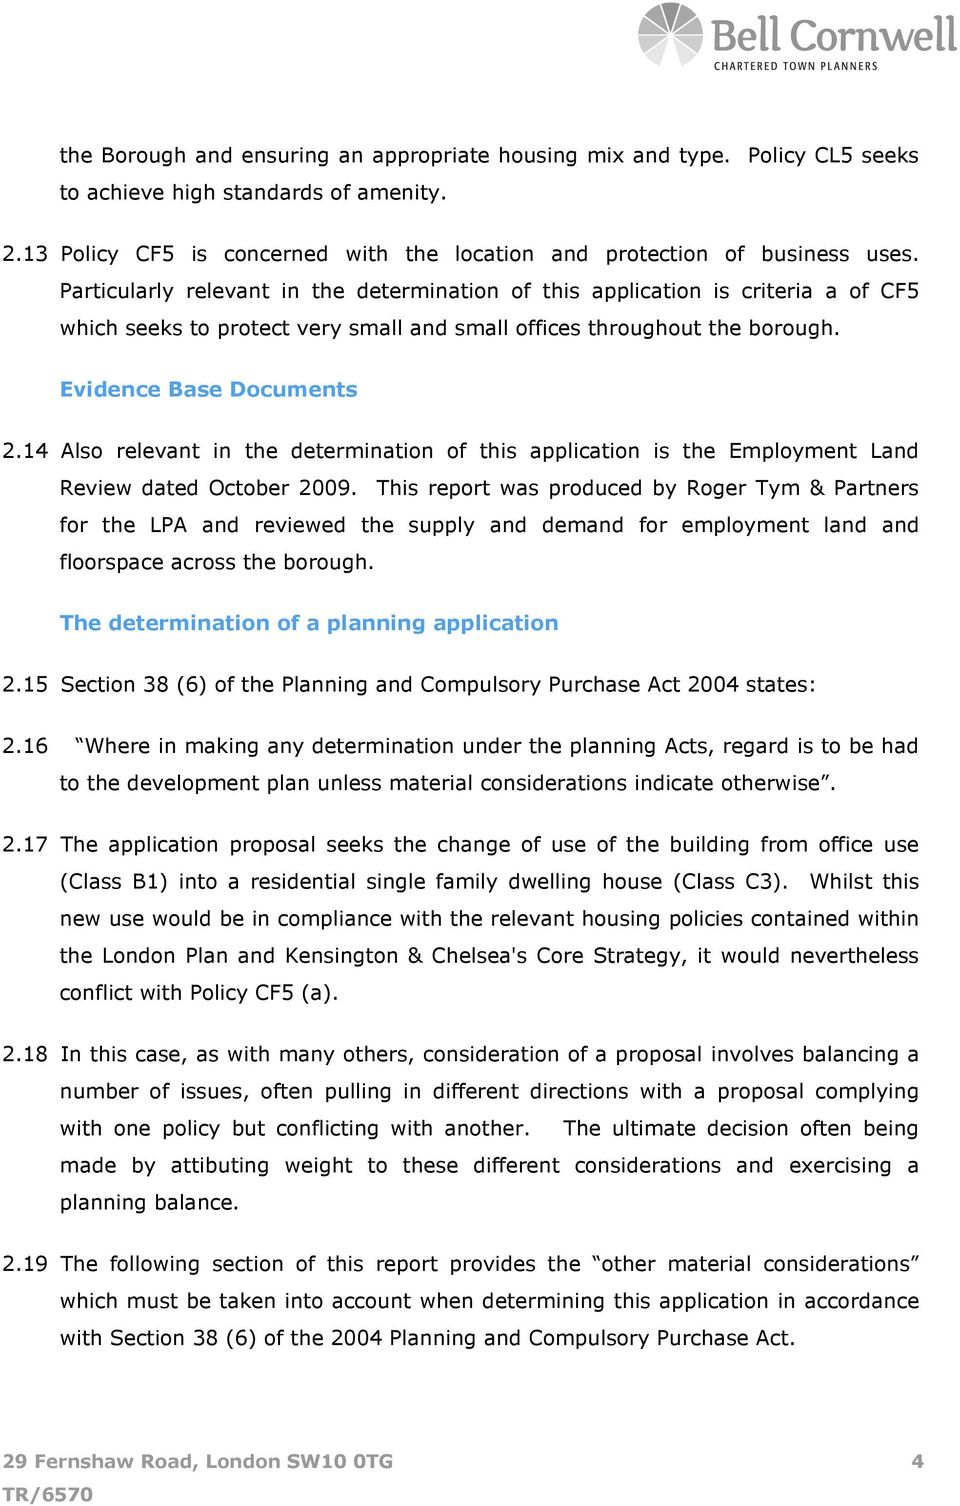 14 Also relevant in the determination of this application is the Employment Land Review dated October 2009.